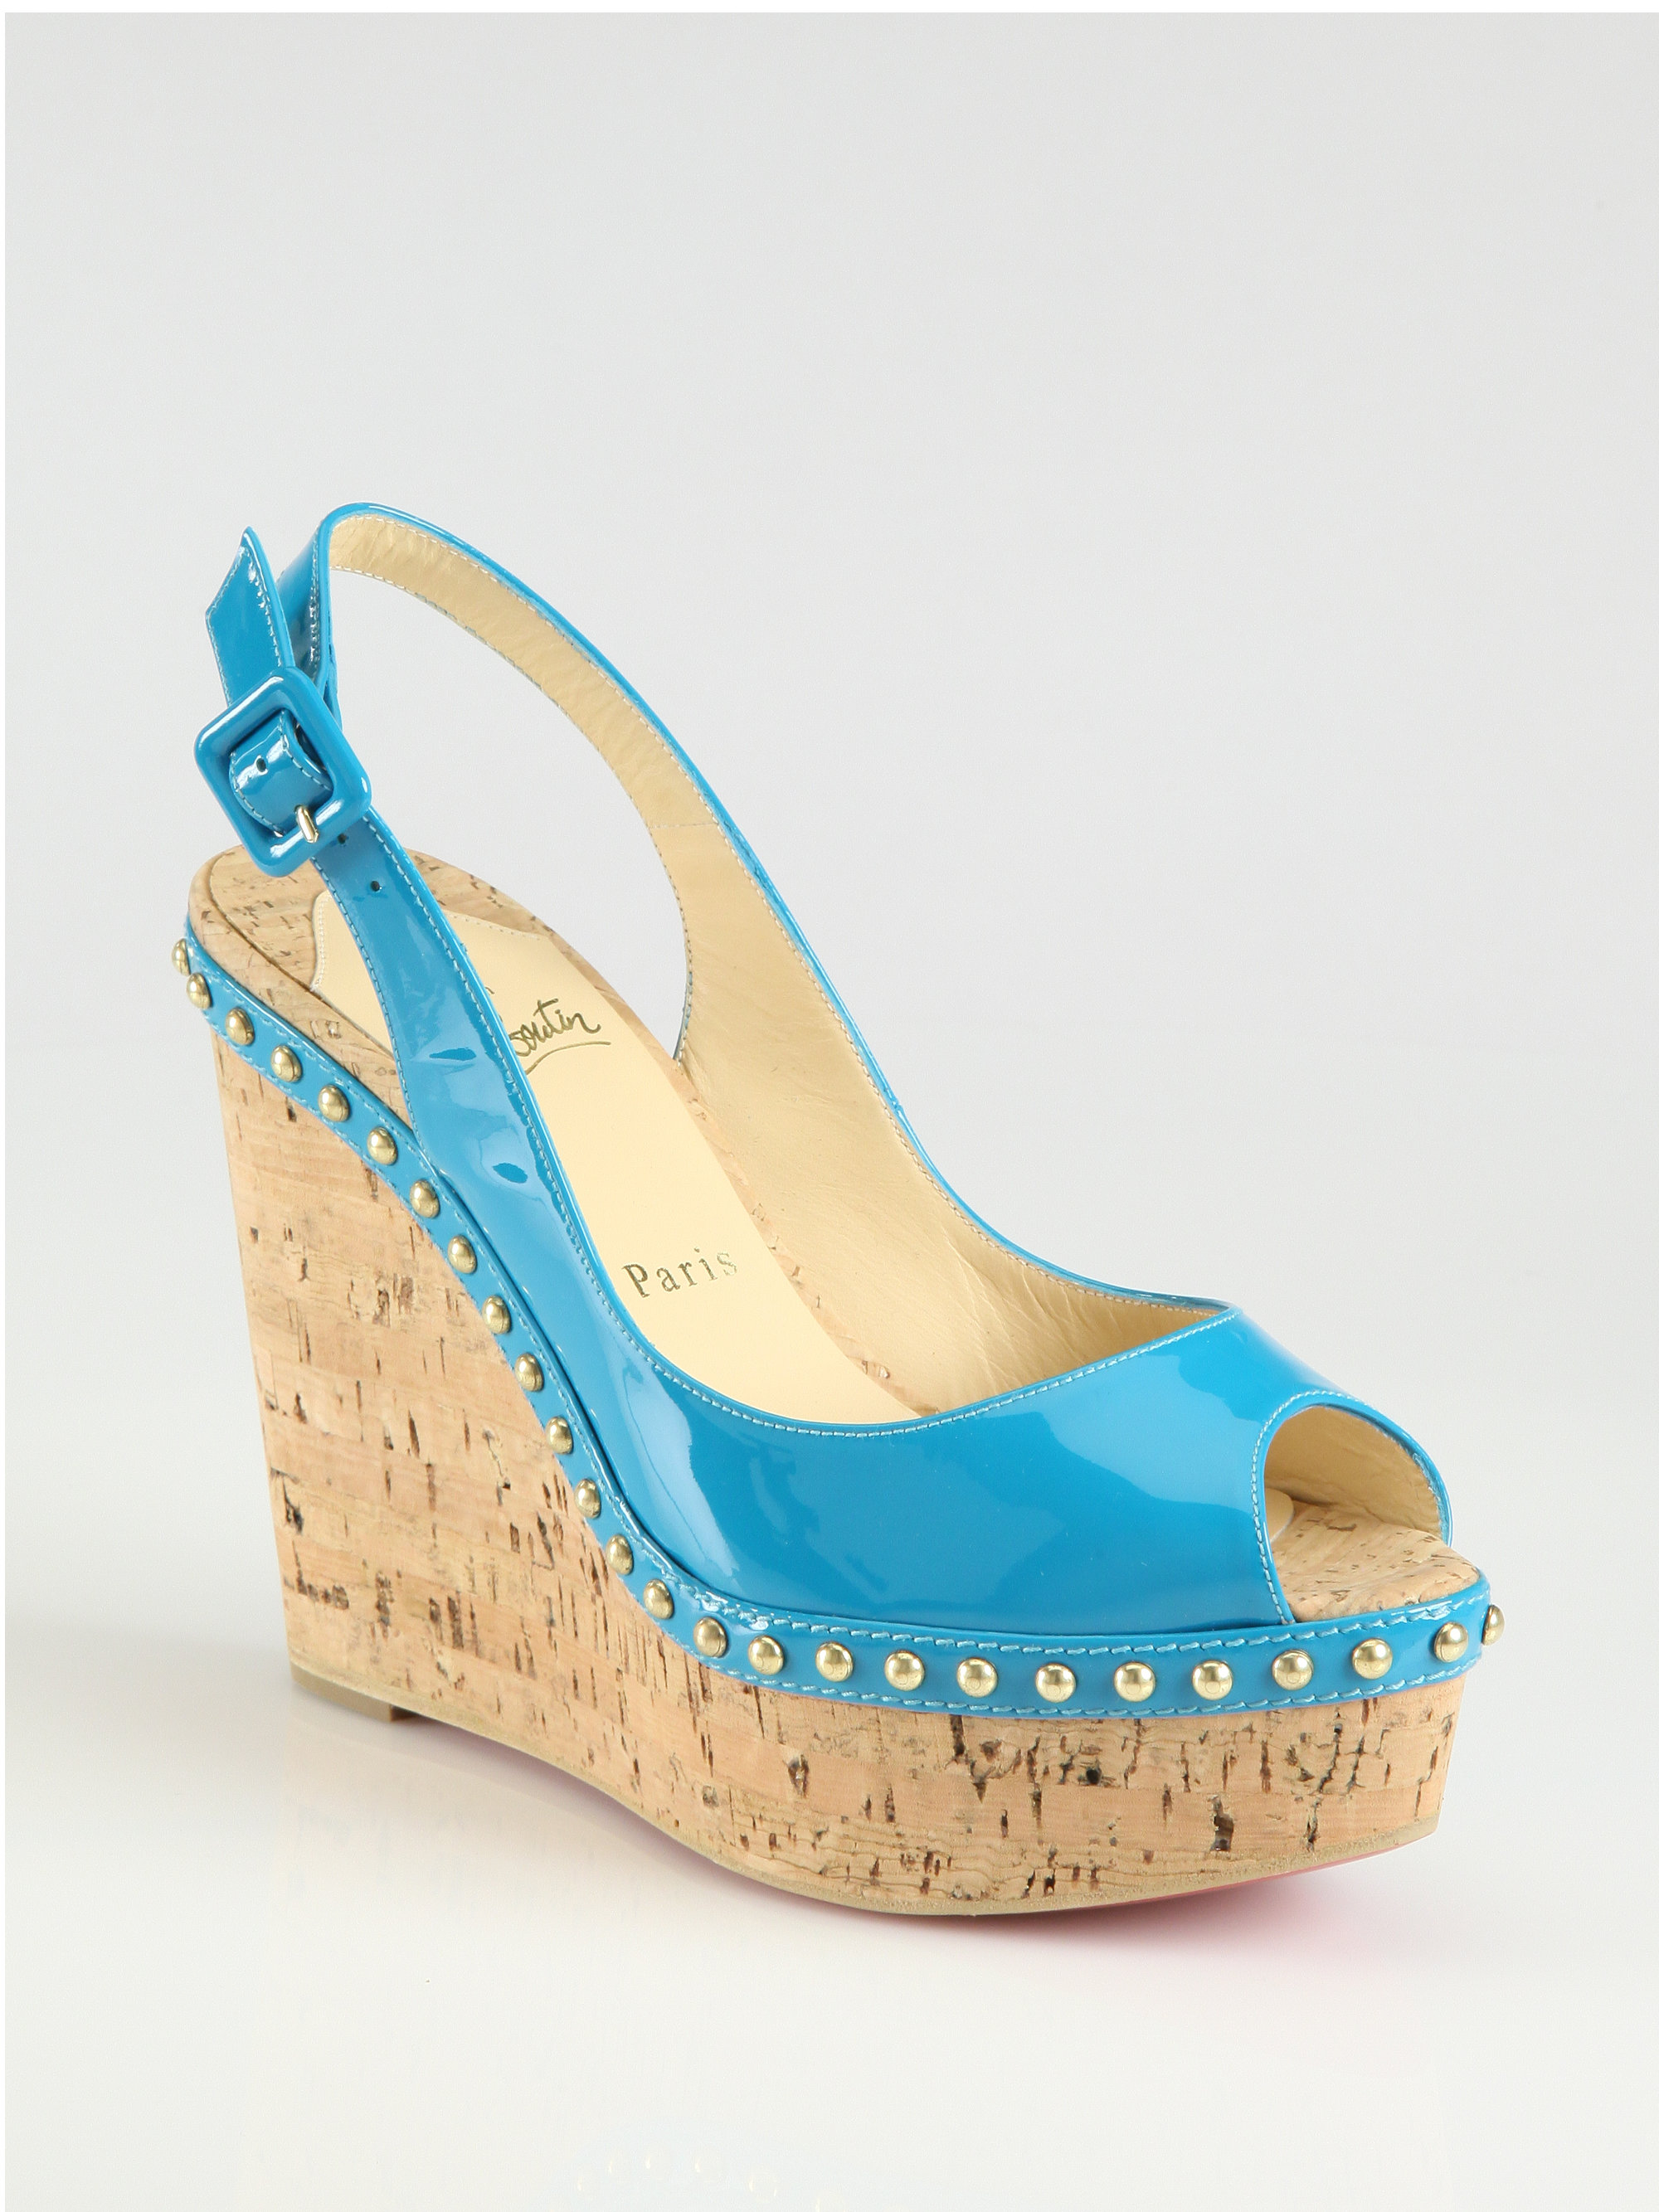 Turquoise Blue Wedge Shoes